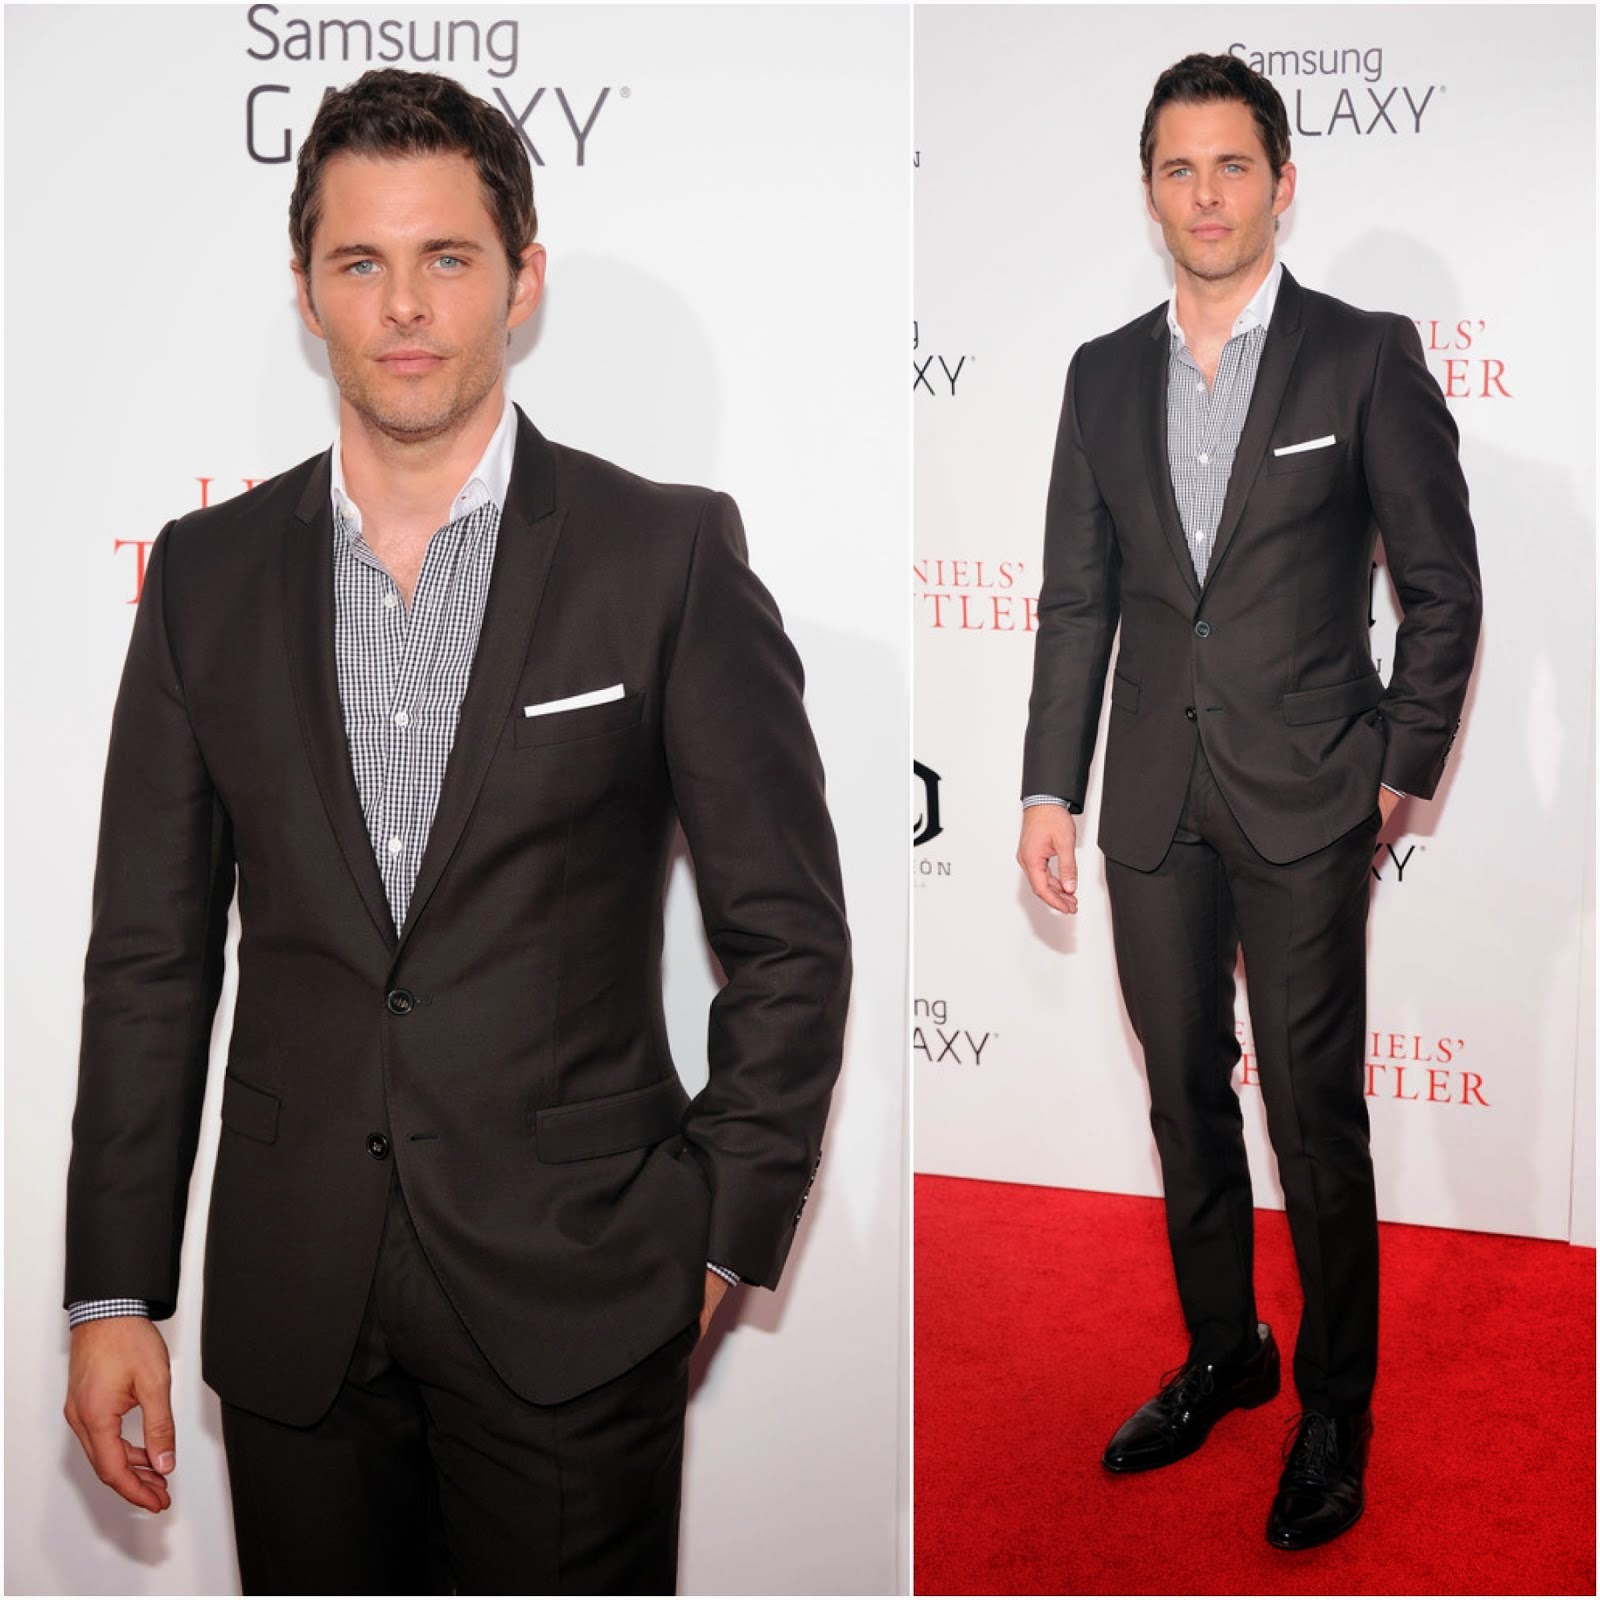 00O00 Menswear Blog: Actor James Marsden attends Lee Daniels' 'The Butler' New York Premiere, hosted by TWC, Samsung Galaxy and DeLeon Tequila on August 5, 2013 in New York City.